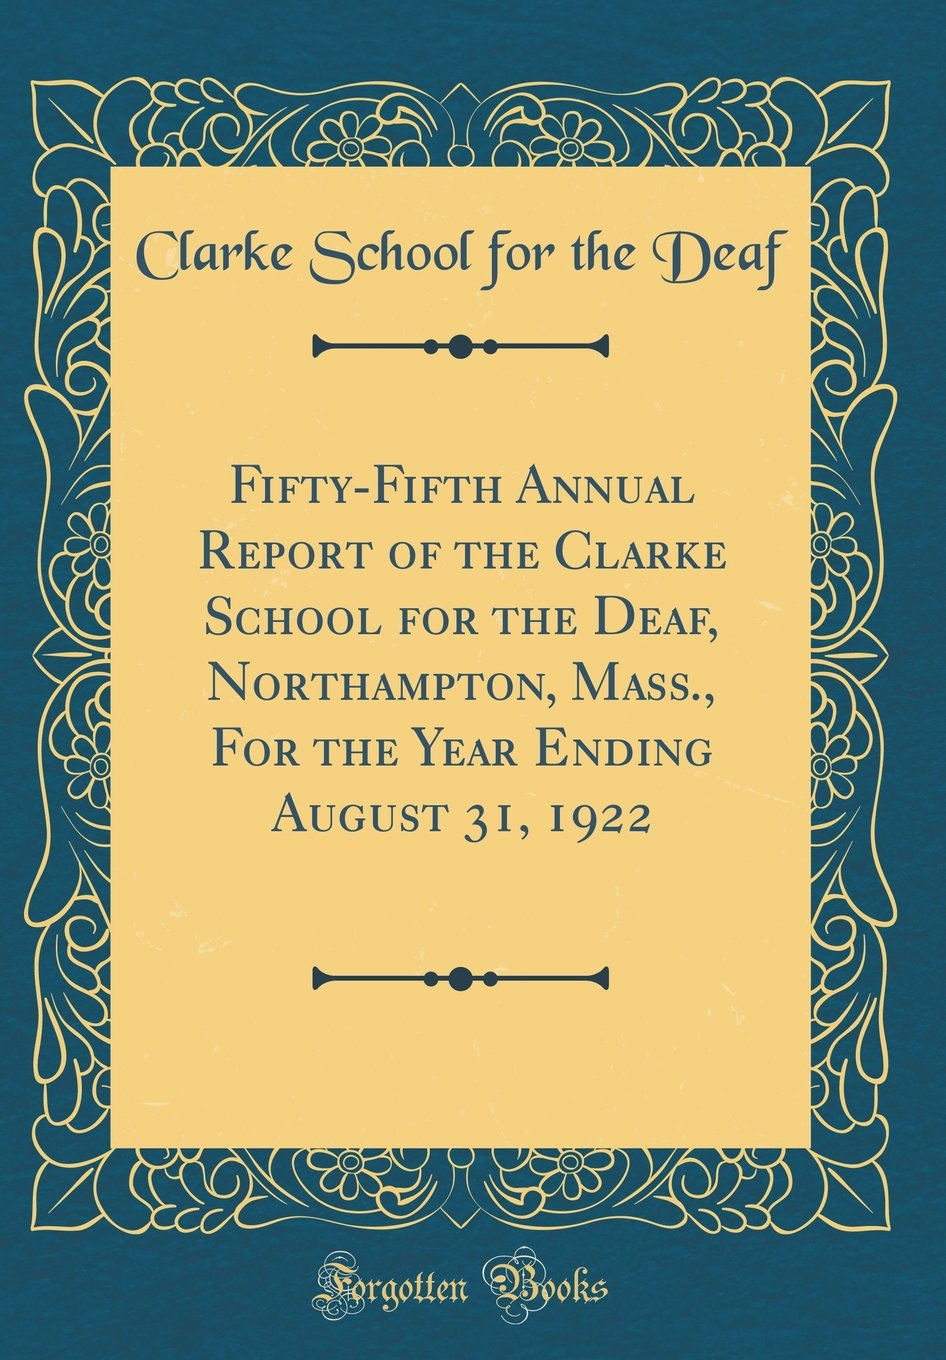 Read Online Fifty-Fifth Annual Report of the Clarke School for the Deaf, Northampton, Mass., for the Year Ending August 31, 1922 (Classic Reprint) ebook